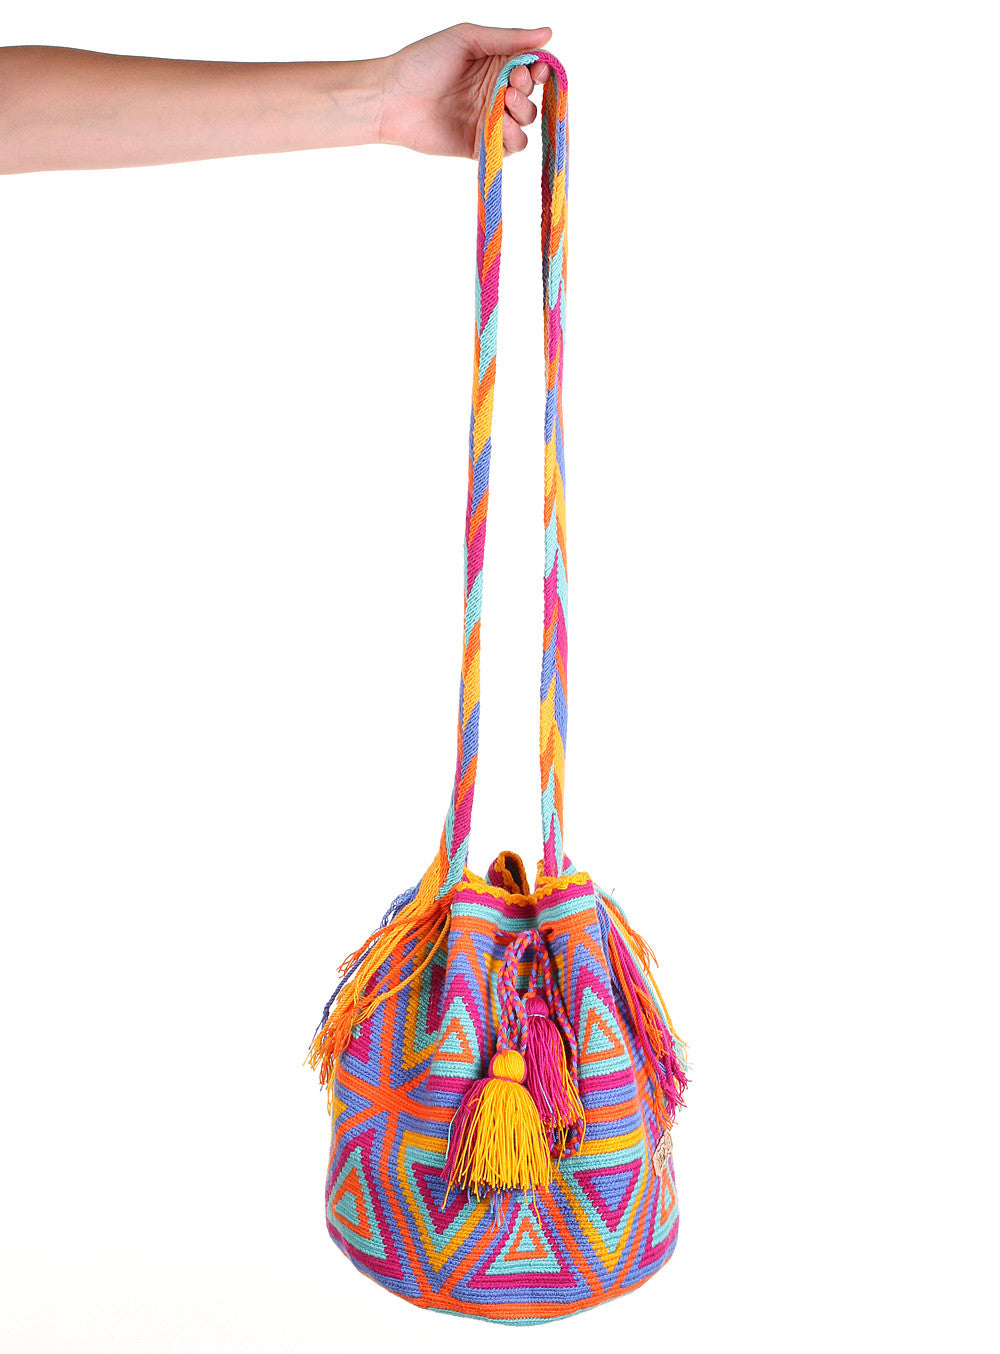 WB115 - Crochet Wayuu Bucket Bag – One-of-a-kind Design